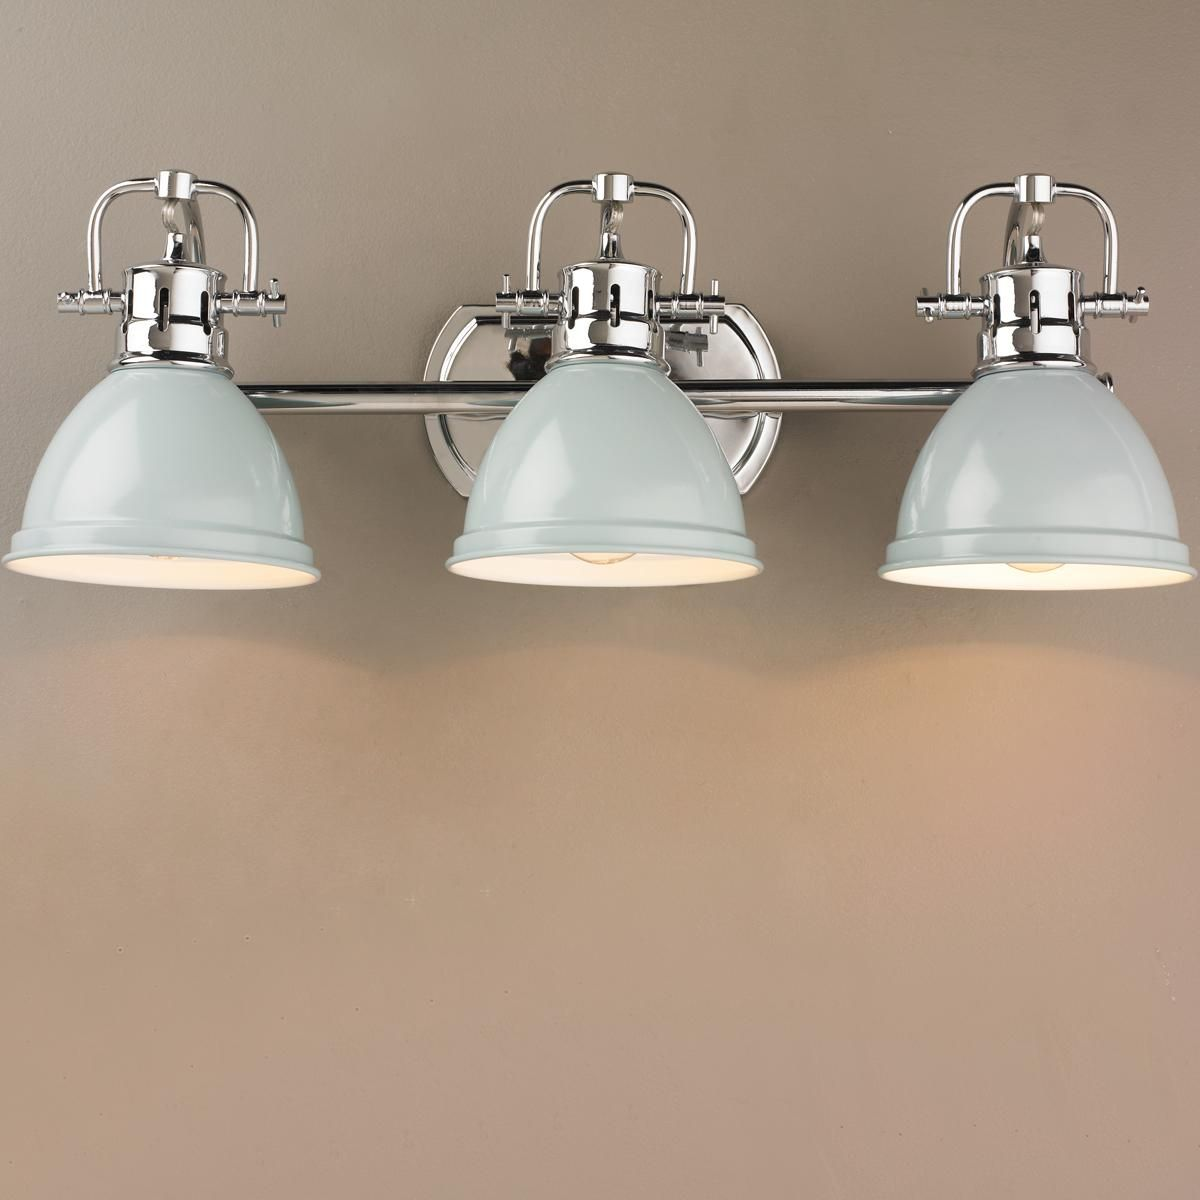 Classic Dome Shade Bath Light 3 Light Bathroom Light Fixtures Chrome Bathroom Light Fixtures Vanity Lighting